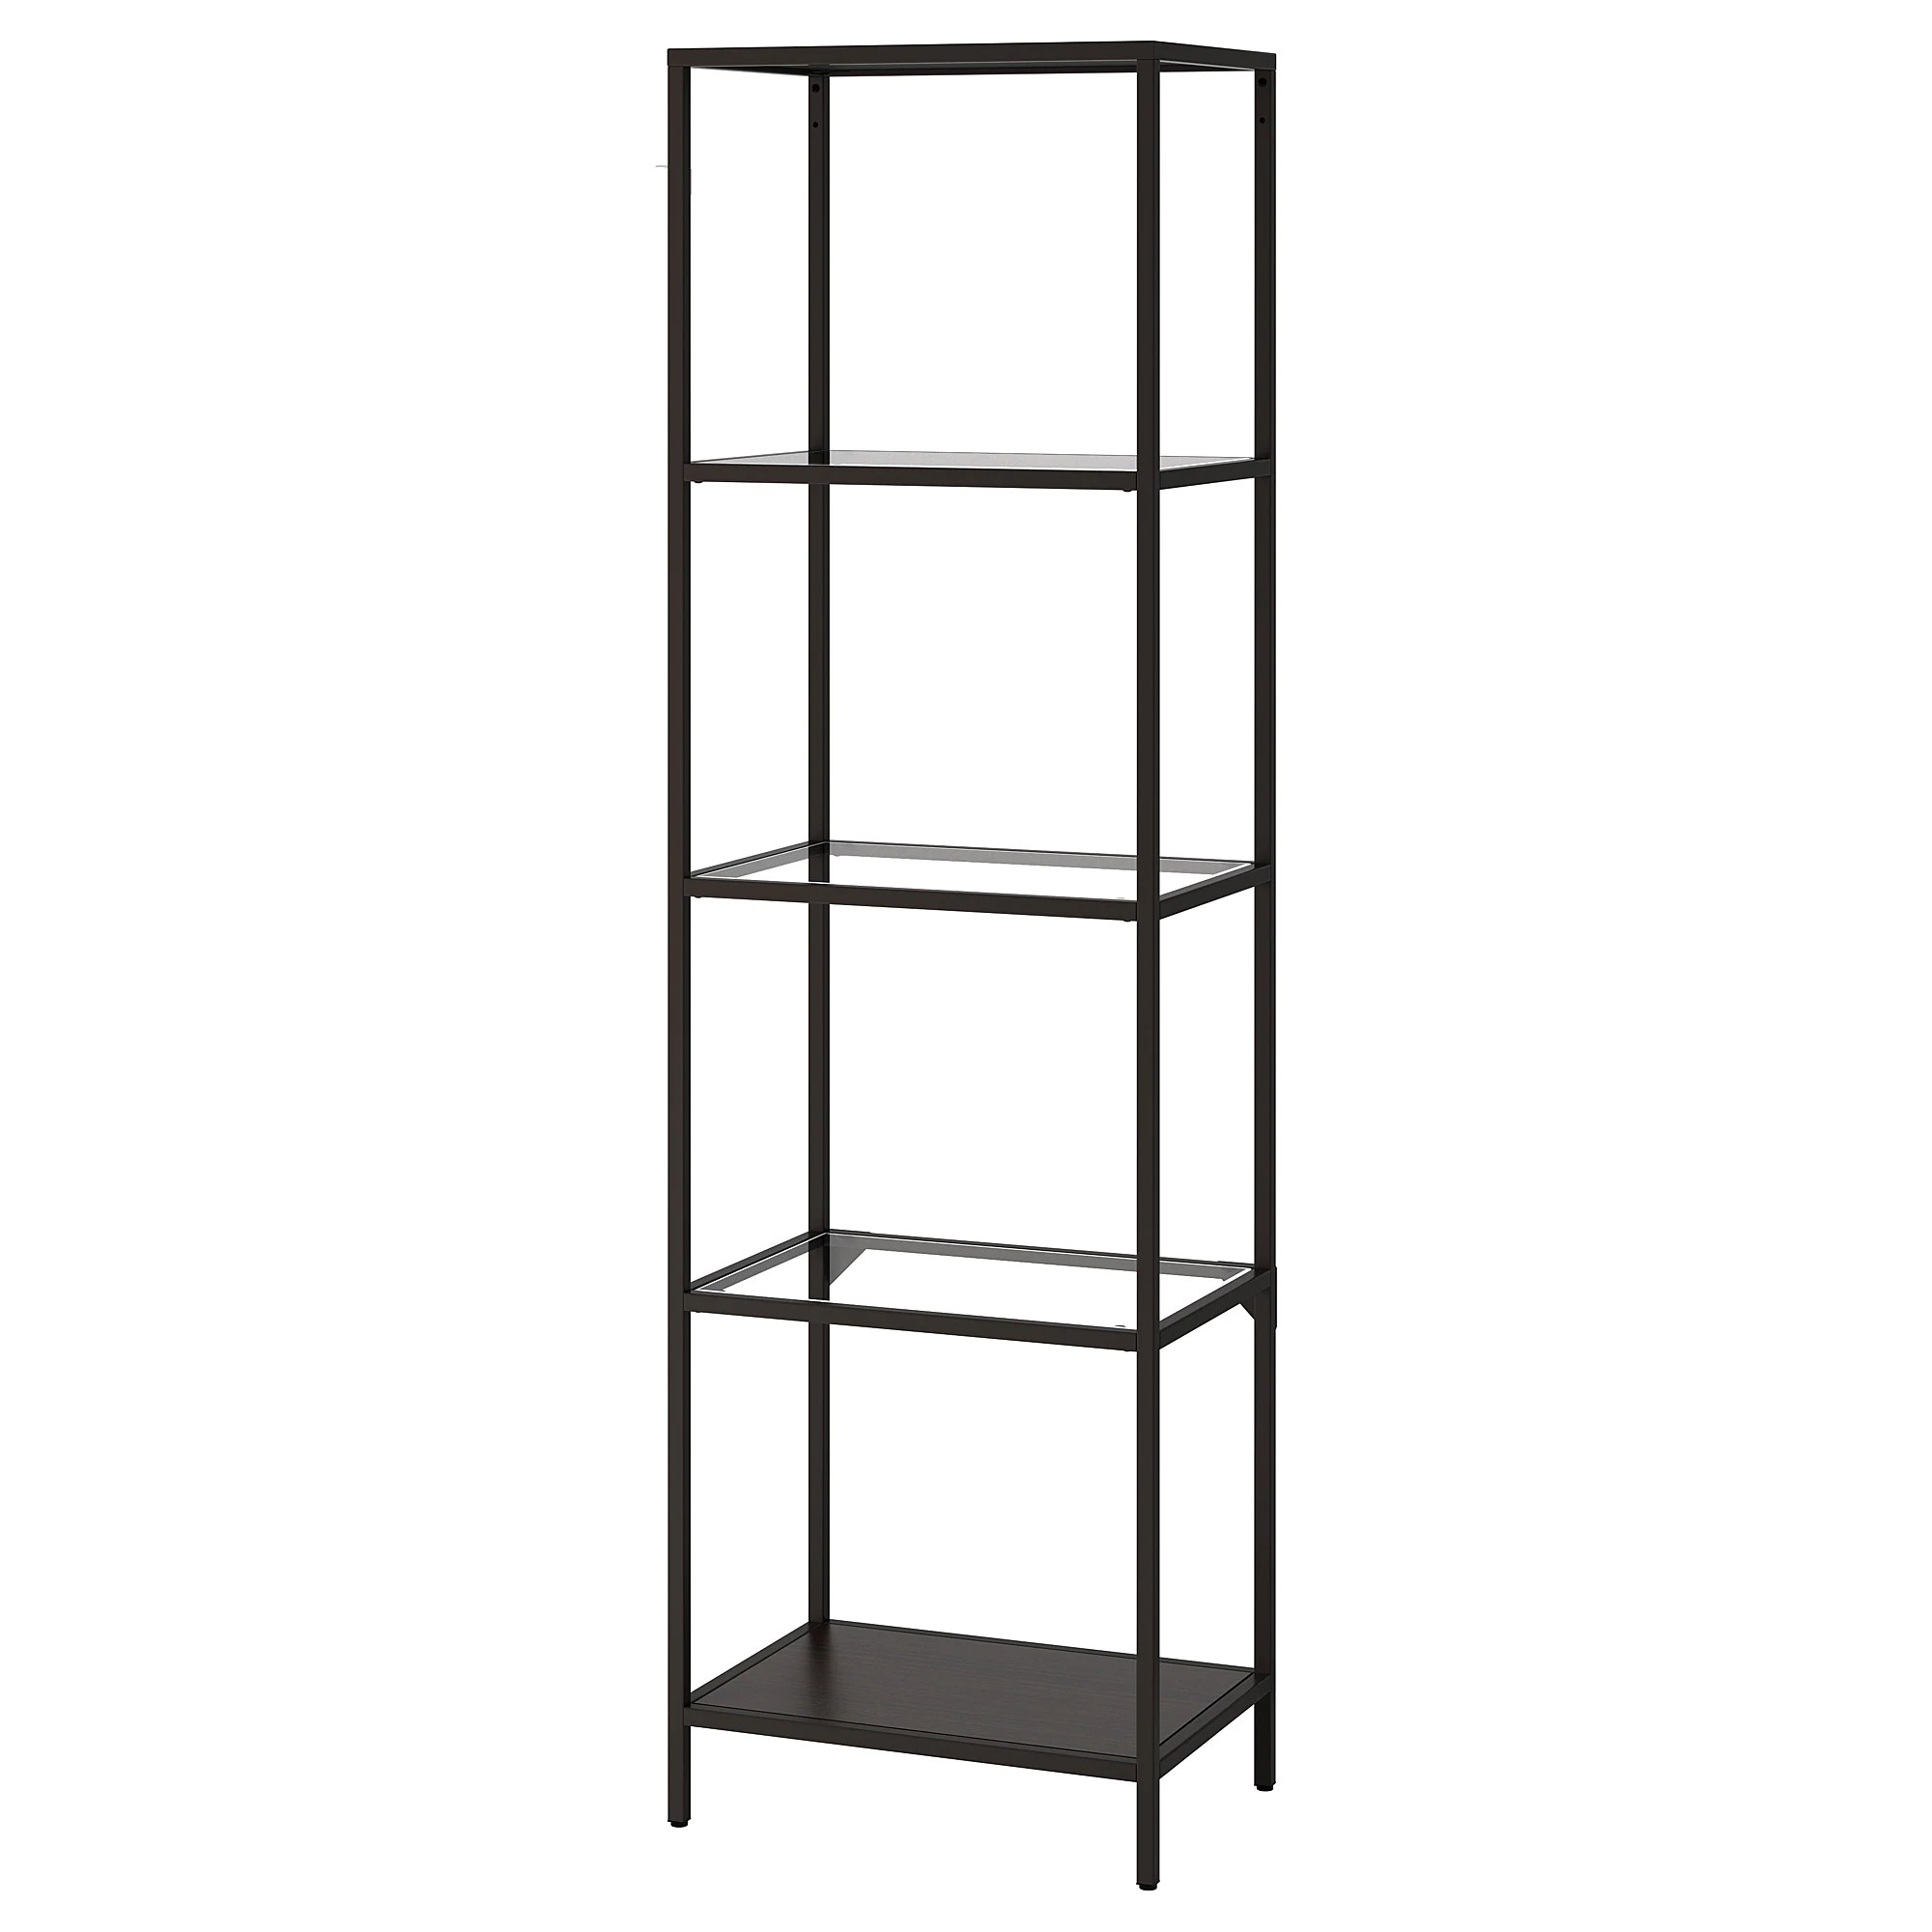 Etagere Rose Ikea VittsjÖ Shelf Unit White Glass